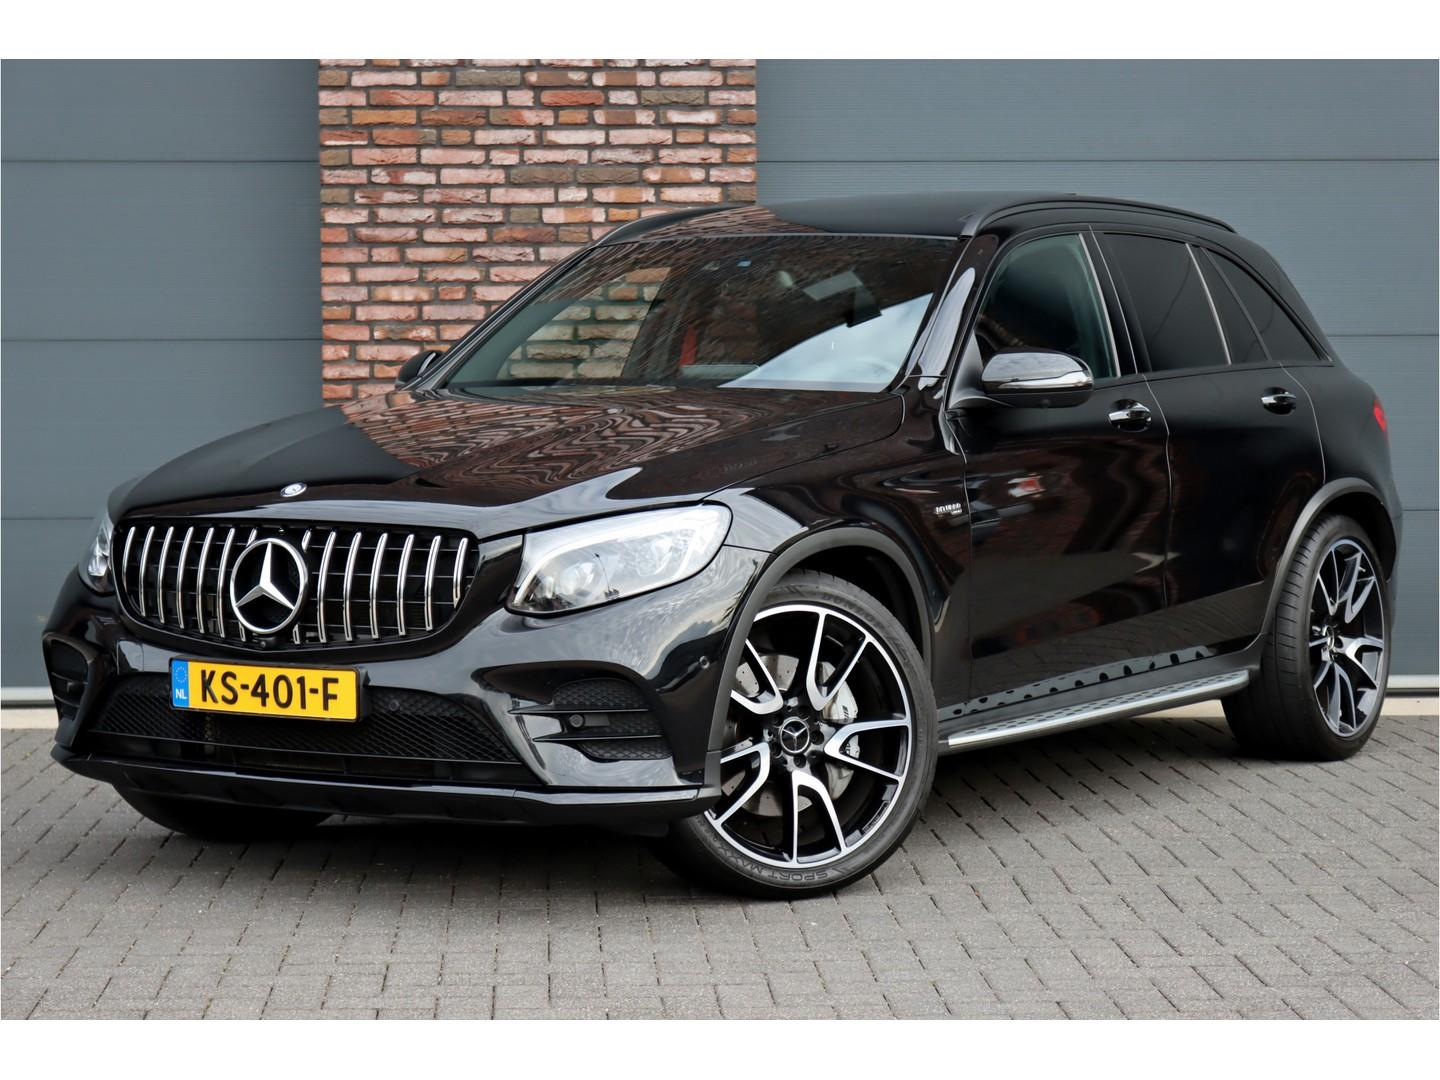 Mercedes-benz Glc 43 amg 4-matic aut9, luchtvering, panoramadak, comand, surround camera, memory, keyless-go, burmester, led ils, parkeerassistent, sfeerverlichting, dodehoekassistent, etc.